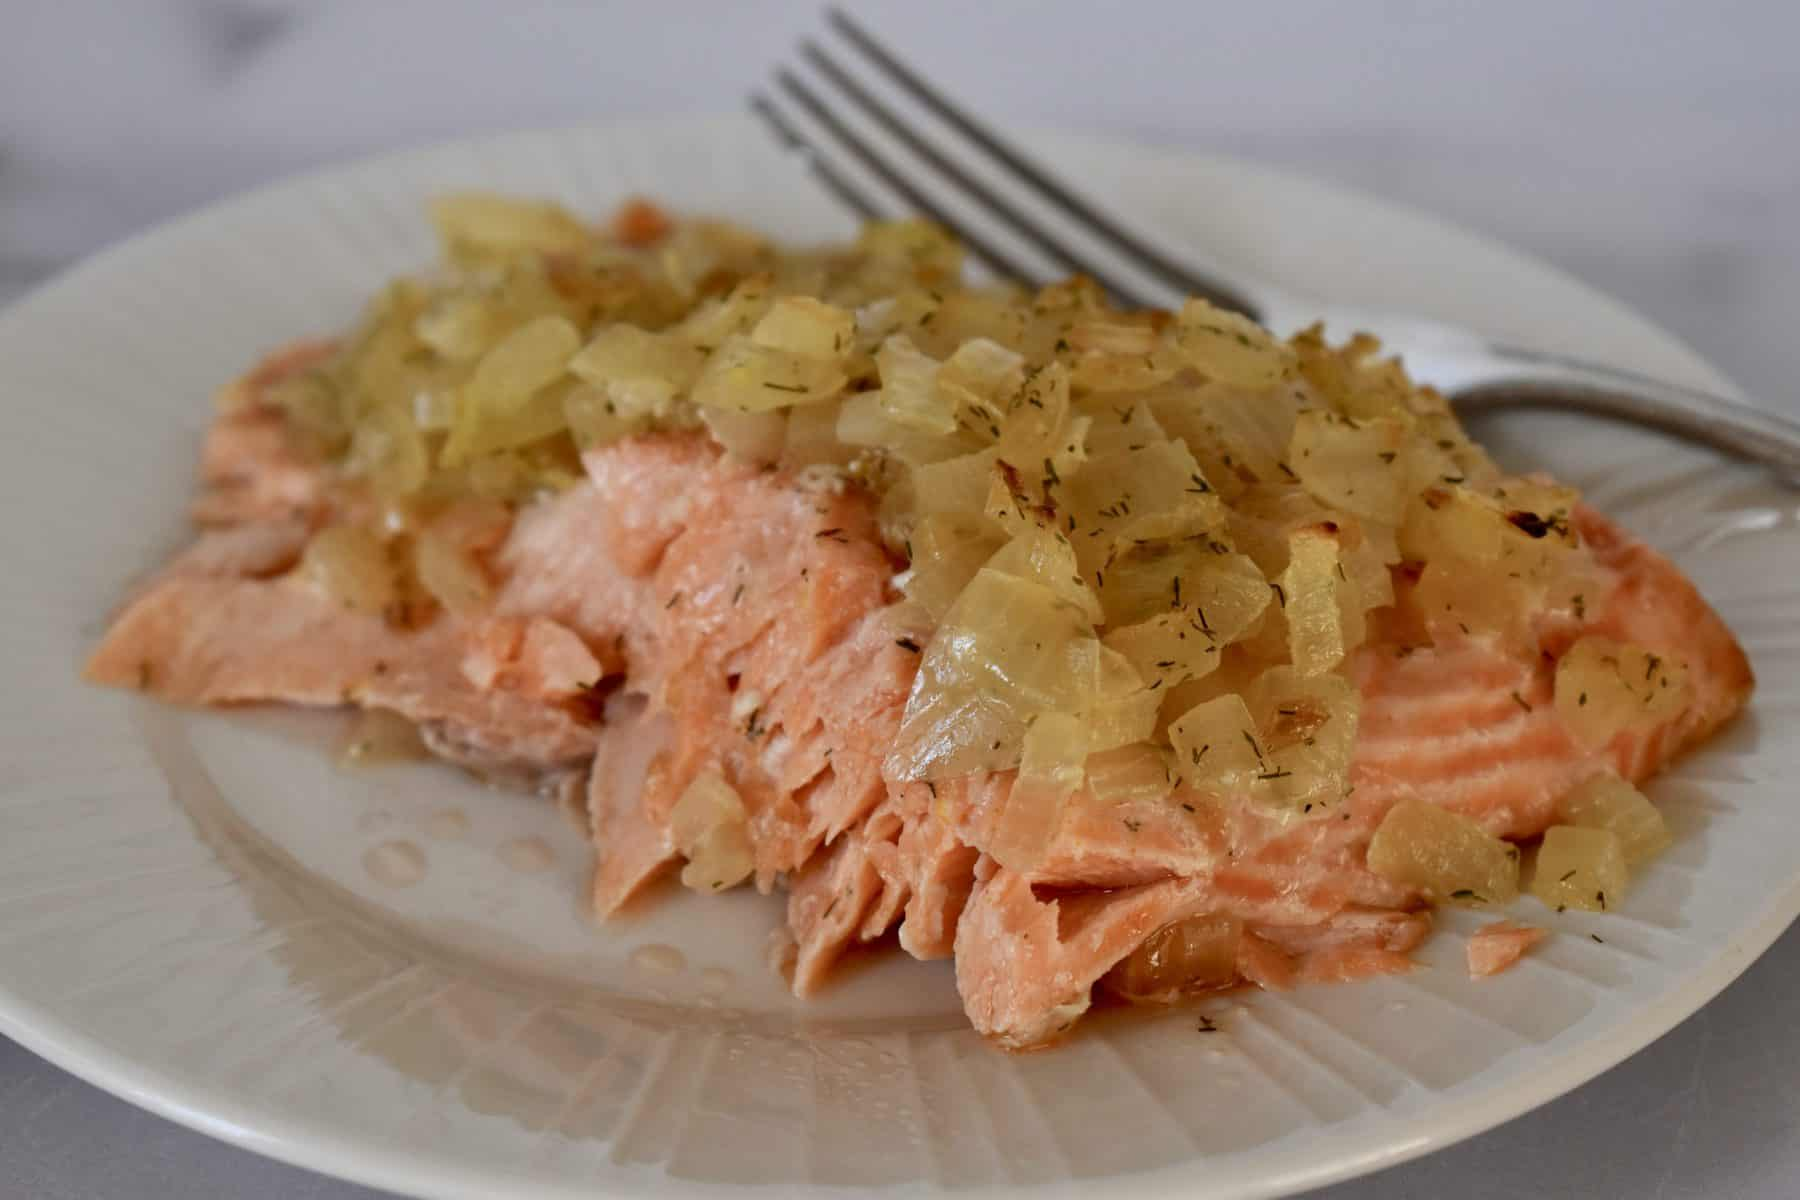 Salmon on a plate with caramelized onions on top.